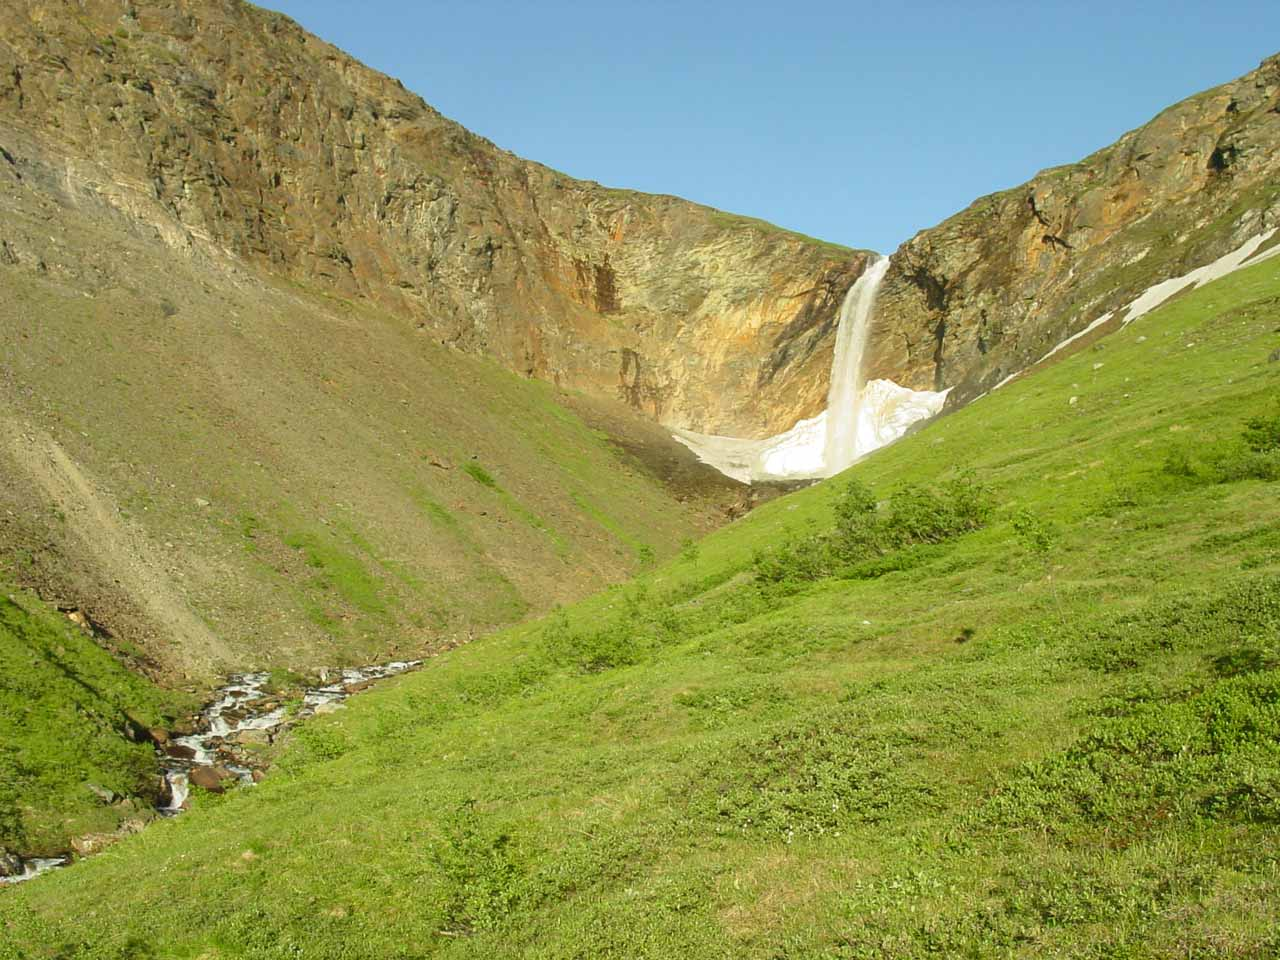 As I got closer to Fosselvfossen, the terrain got steeper and it now didn't seem as obvious to get to the base of the falls